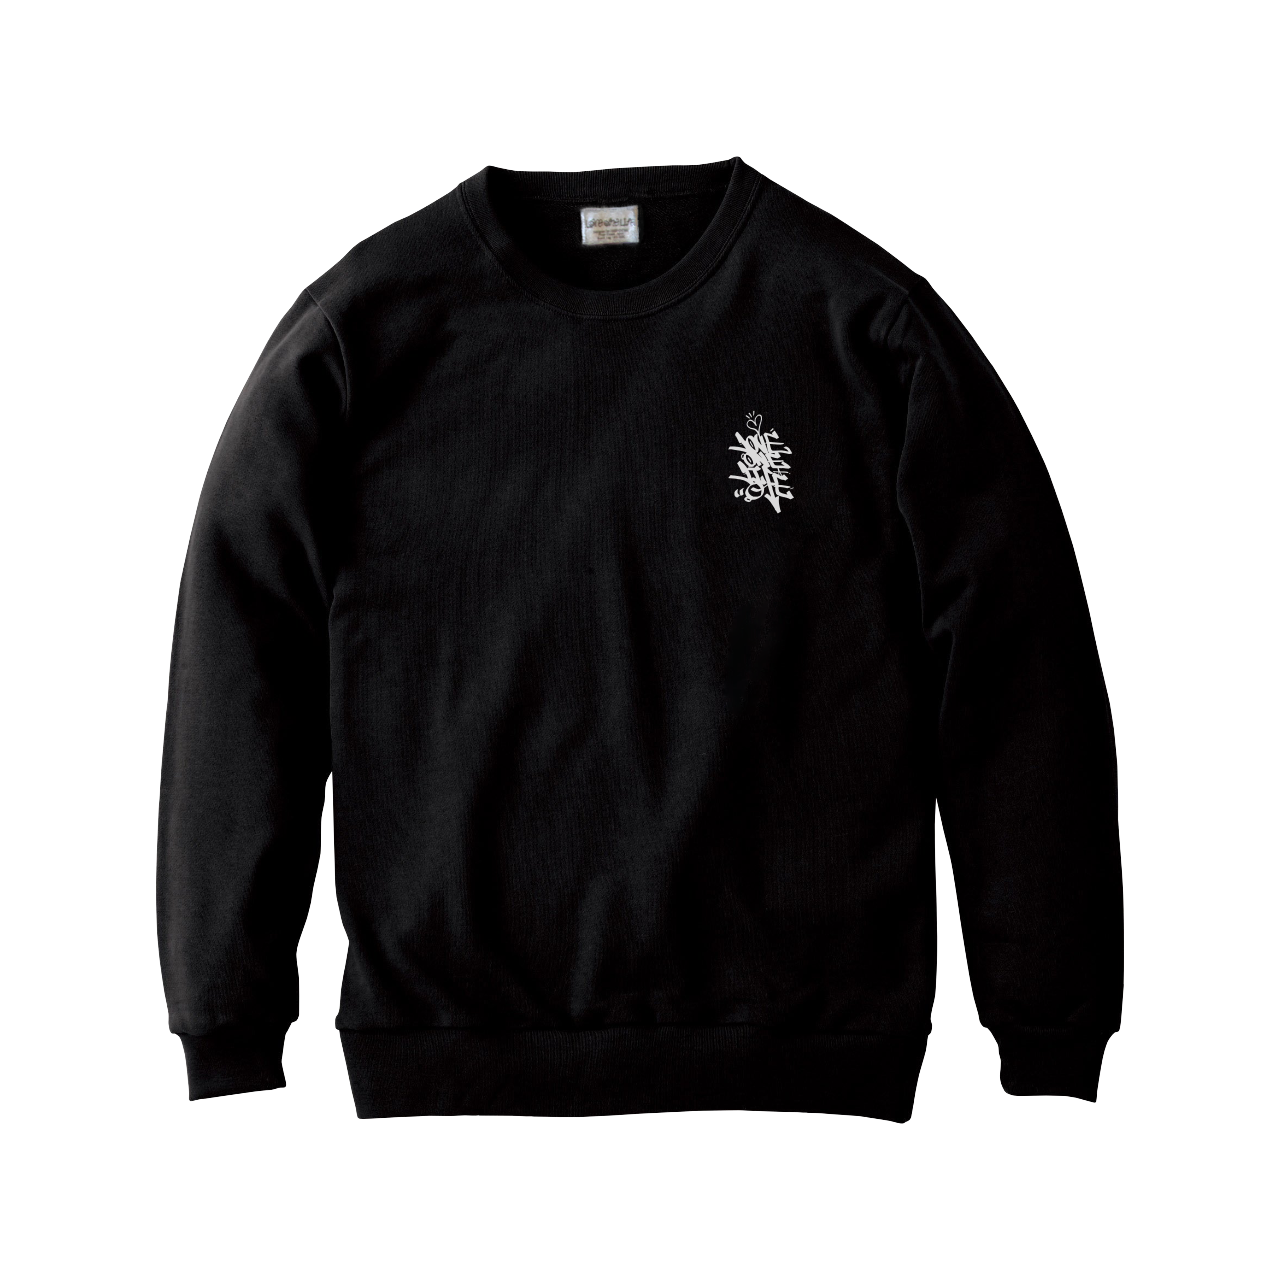 love one life sweater in black